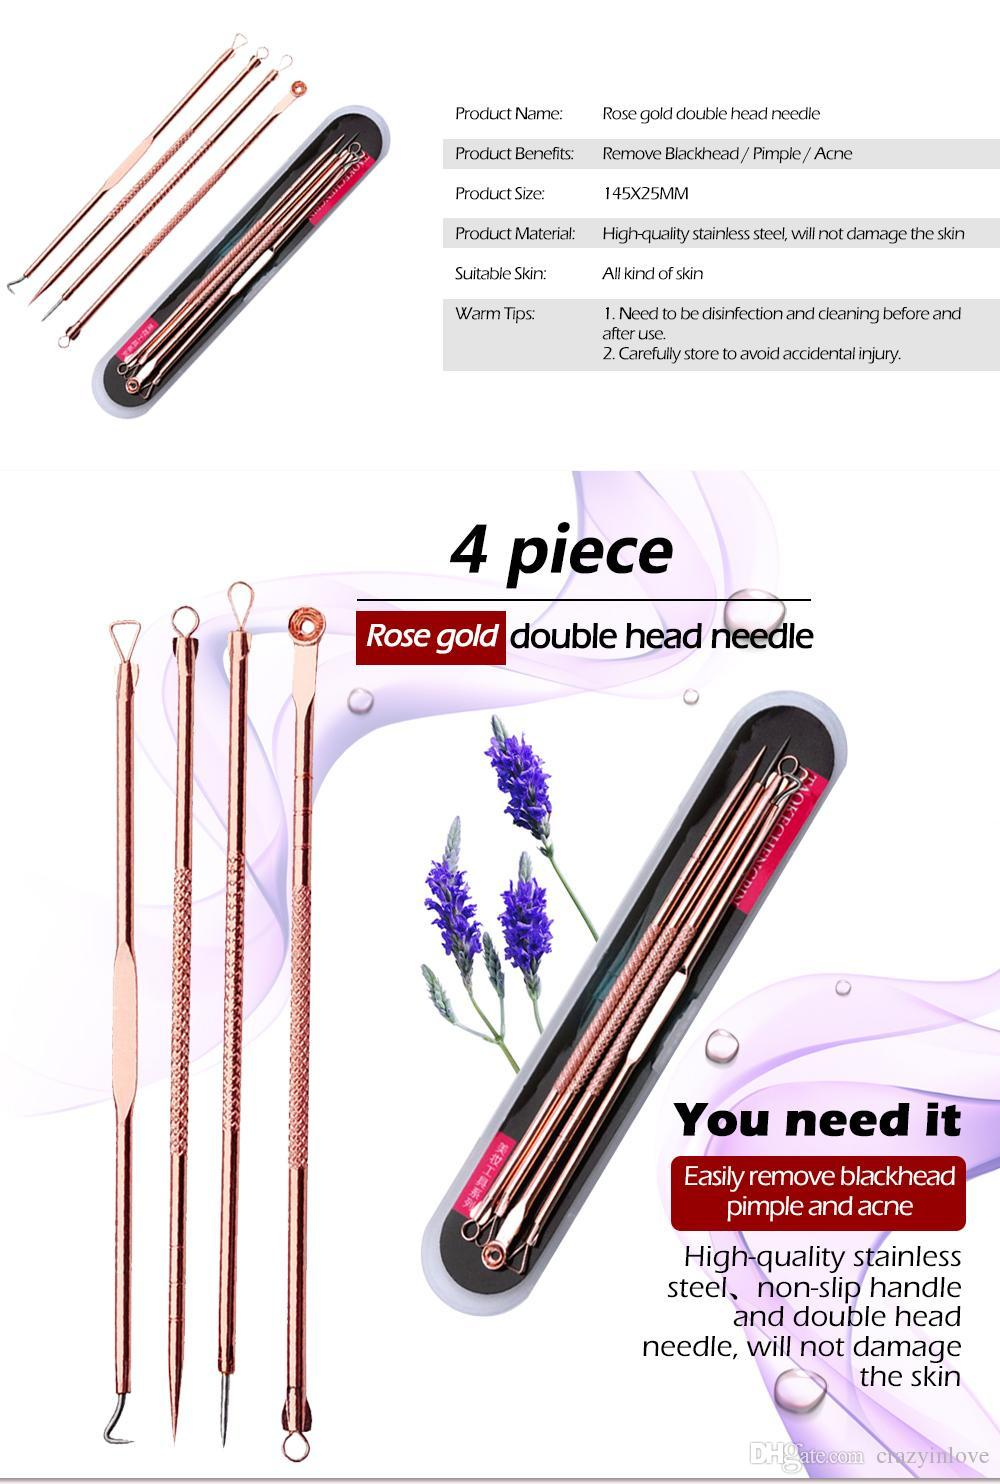 Rose Gold Blackhead Pimple Blemish Extractor Remover Tools Black Head Acne Remover Needle Facial Tool Kit Set Make Up Skin Care Product